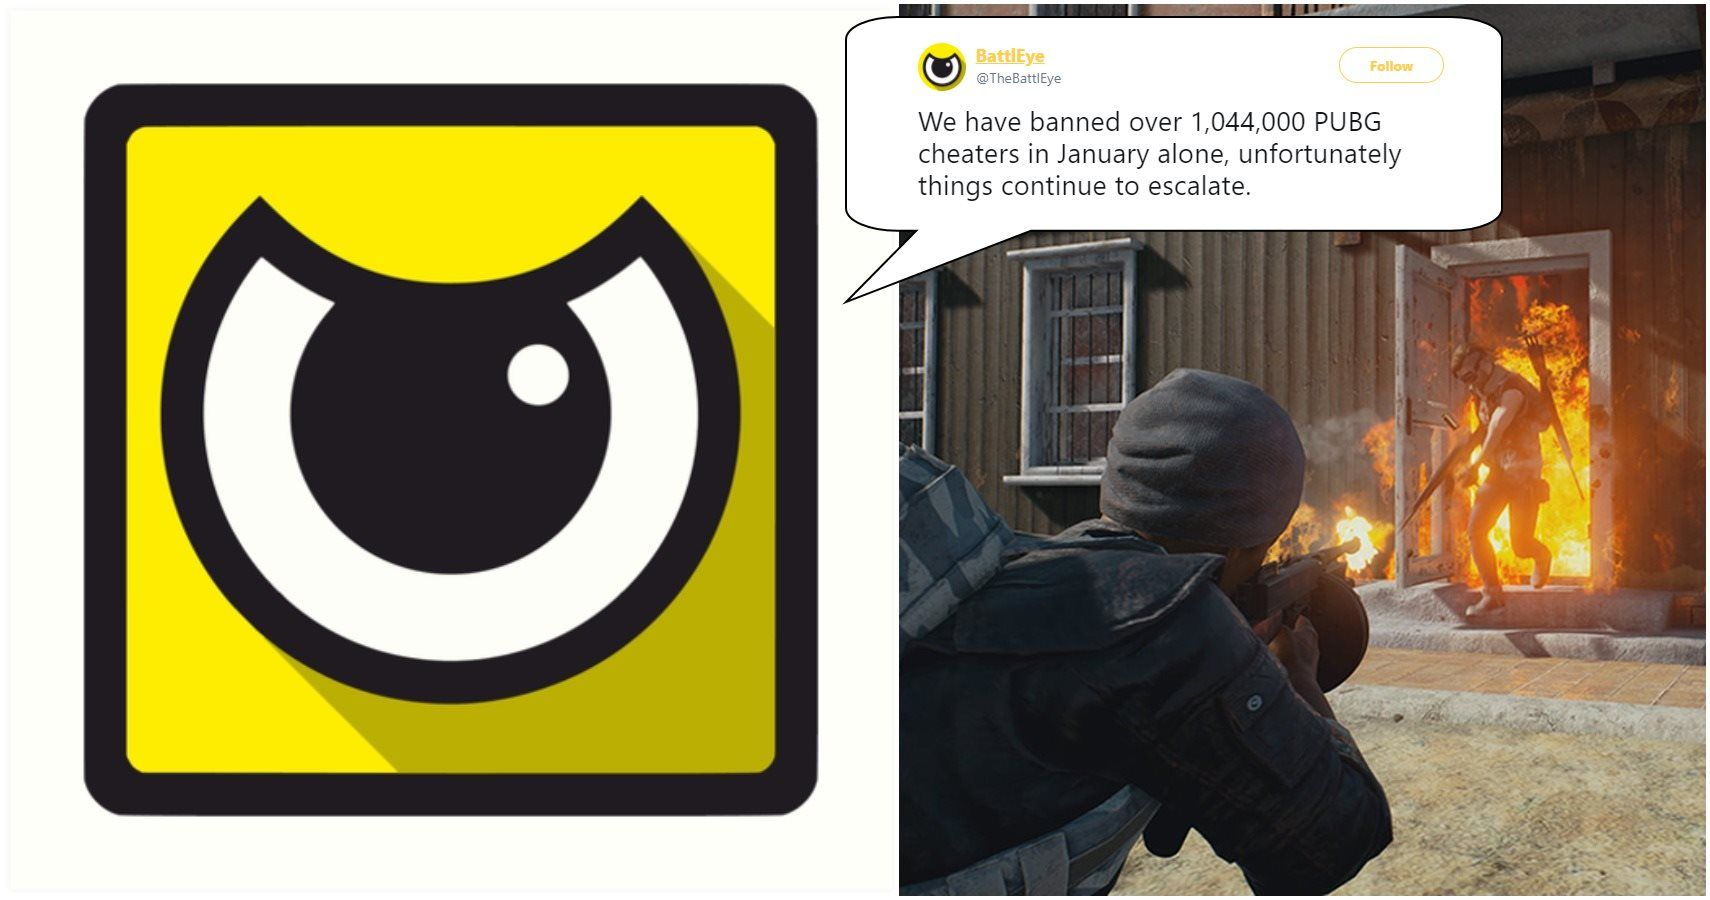 BattlEye: 'We Have Banned Over 1,044,000 PUBG Cheaters In